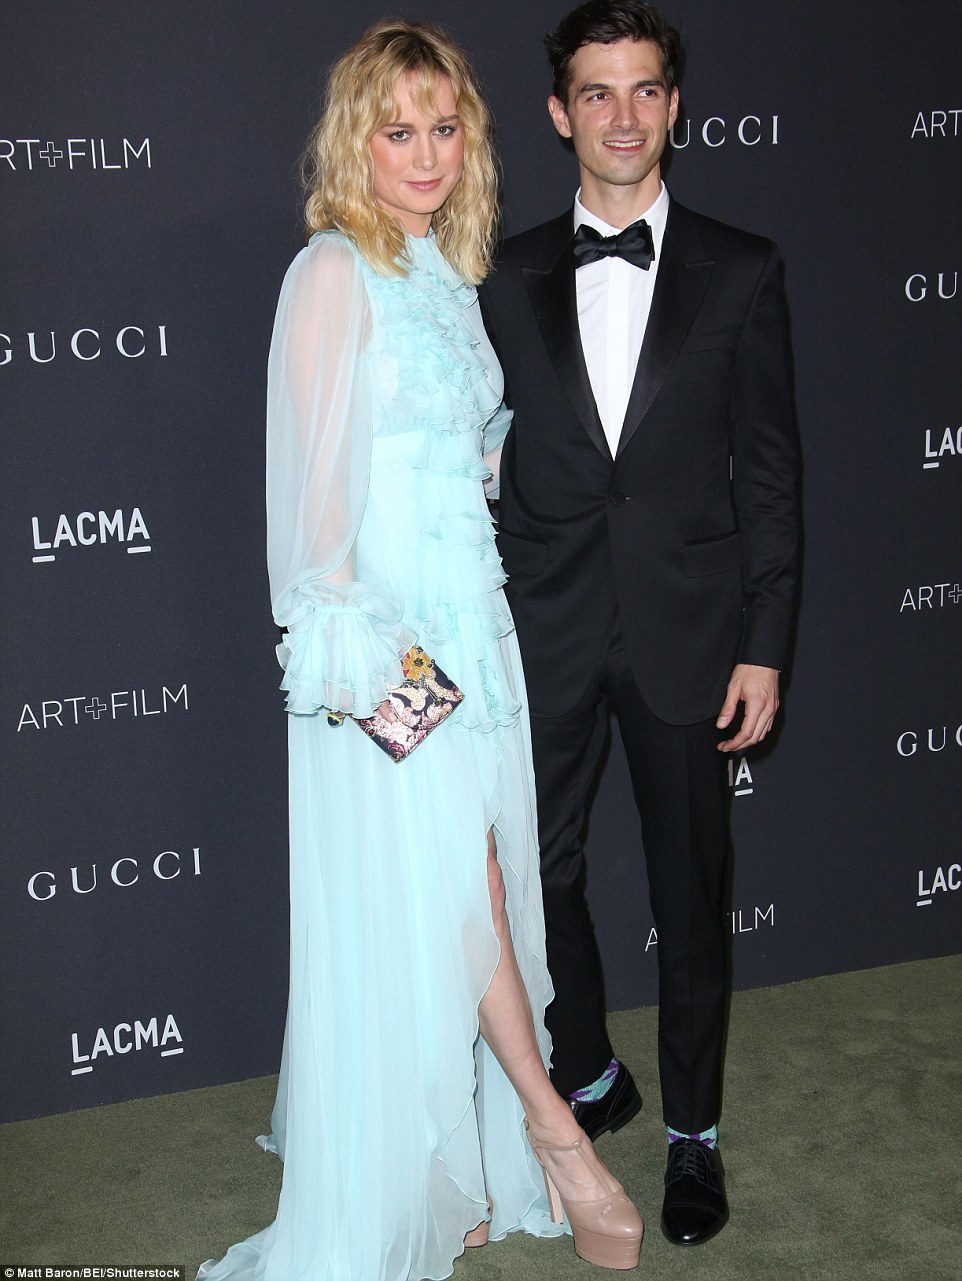 The blonde beauty was joined by her beau Alex Greenwald